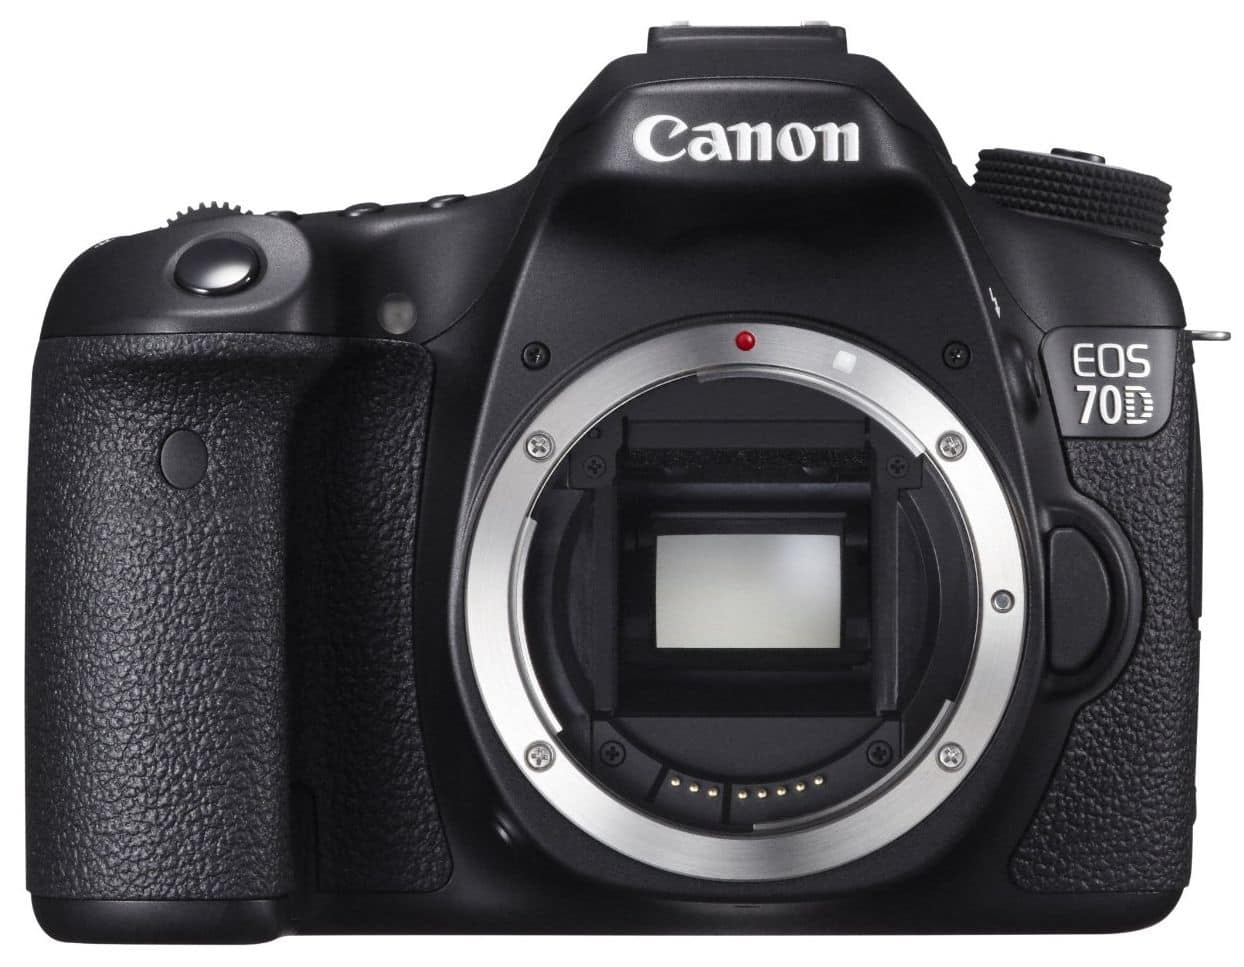 Canon 70D for $700, +18-55 for $800, + 18-135 stm for $850 from Canon refurb store